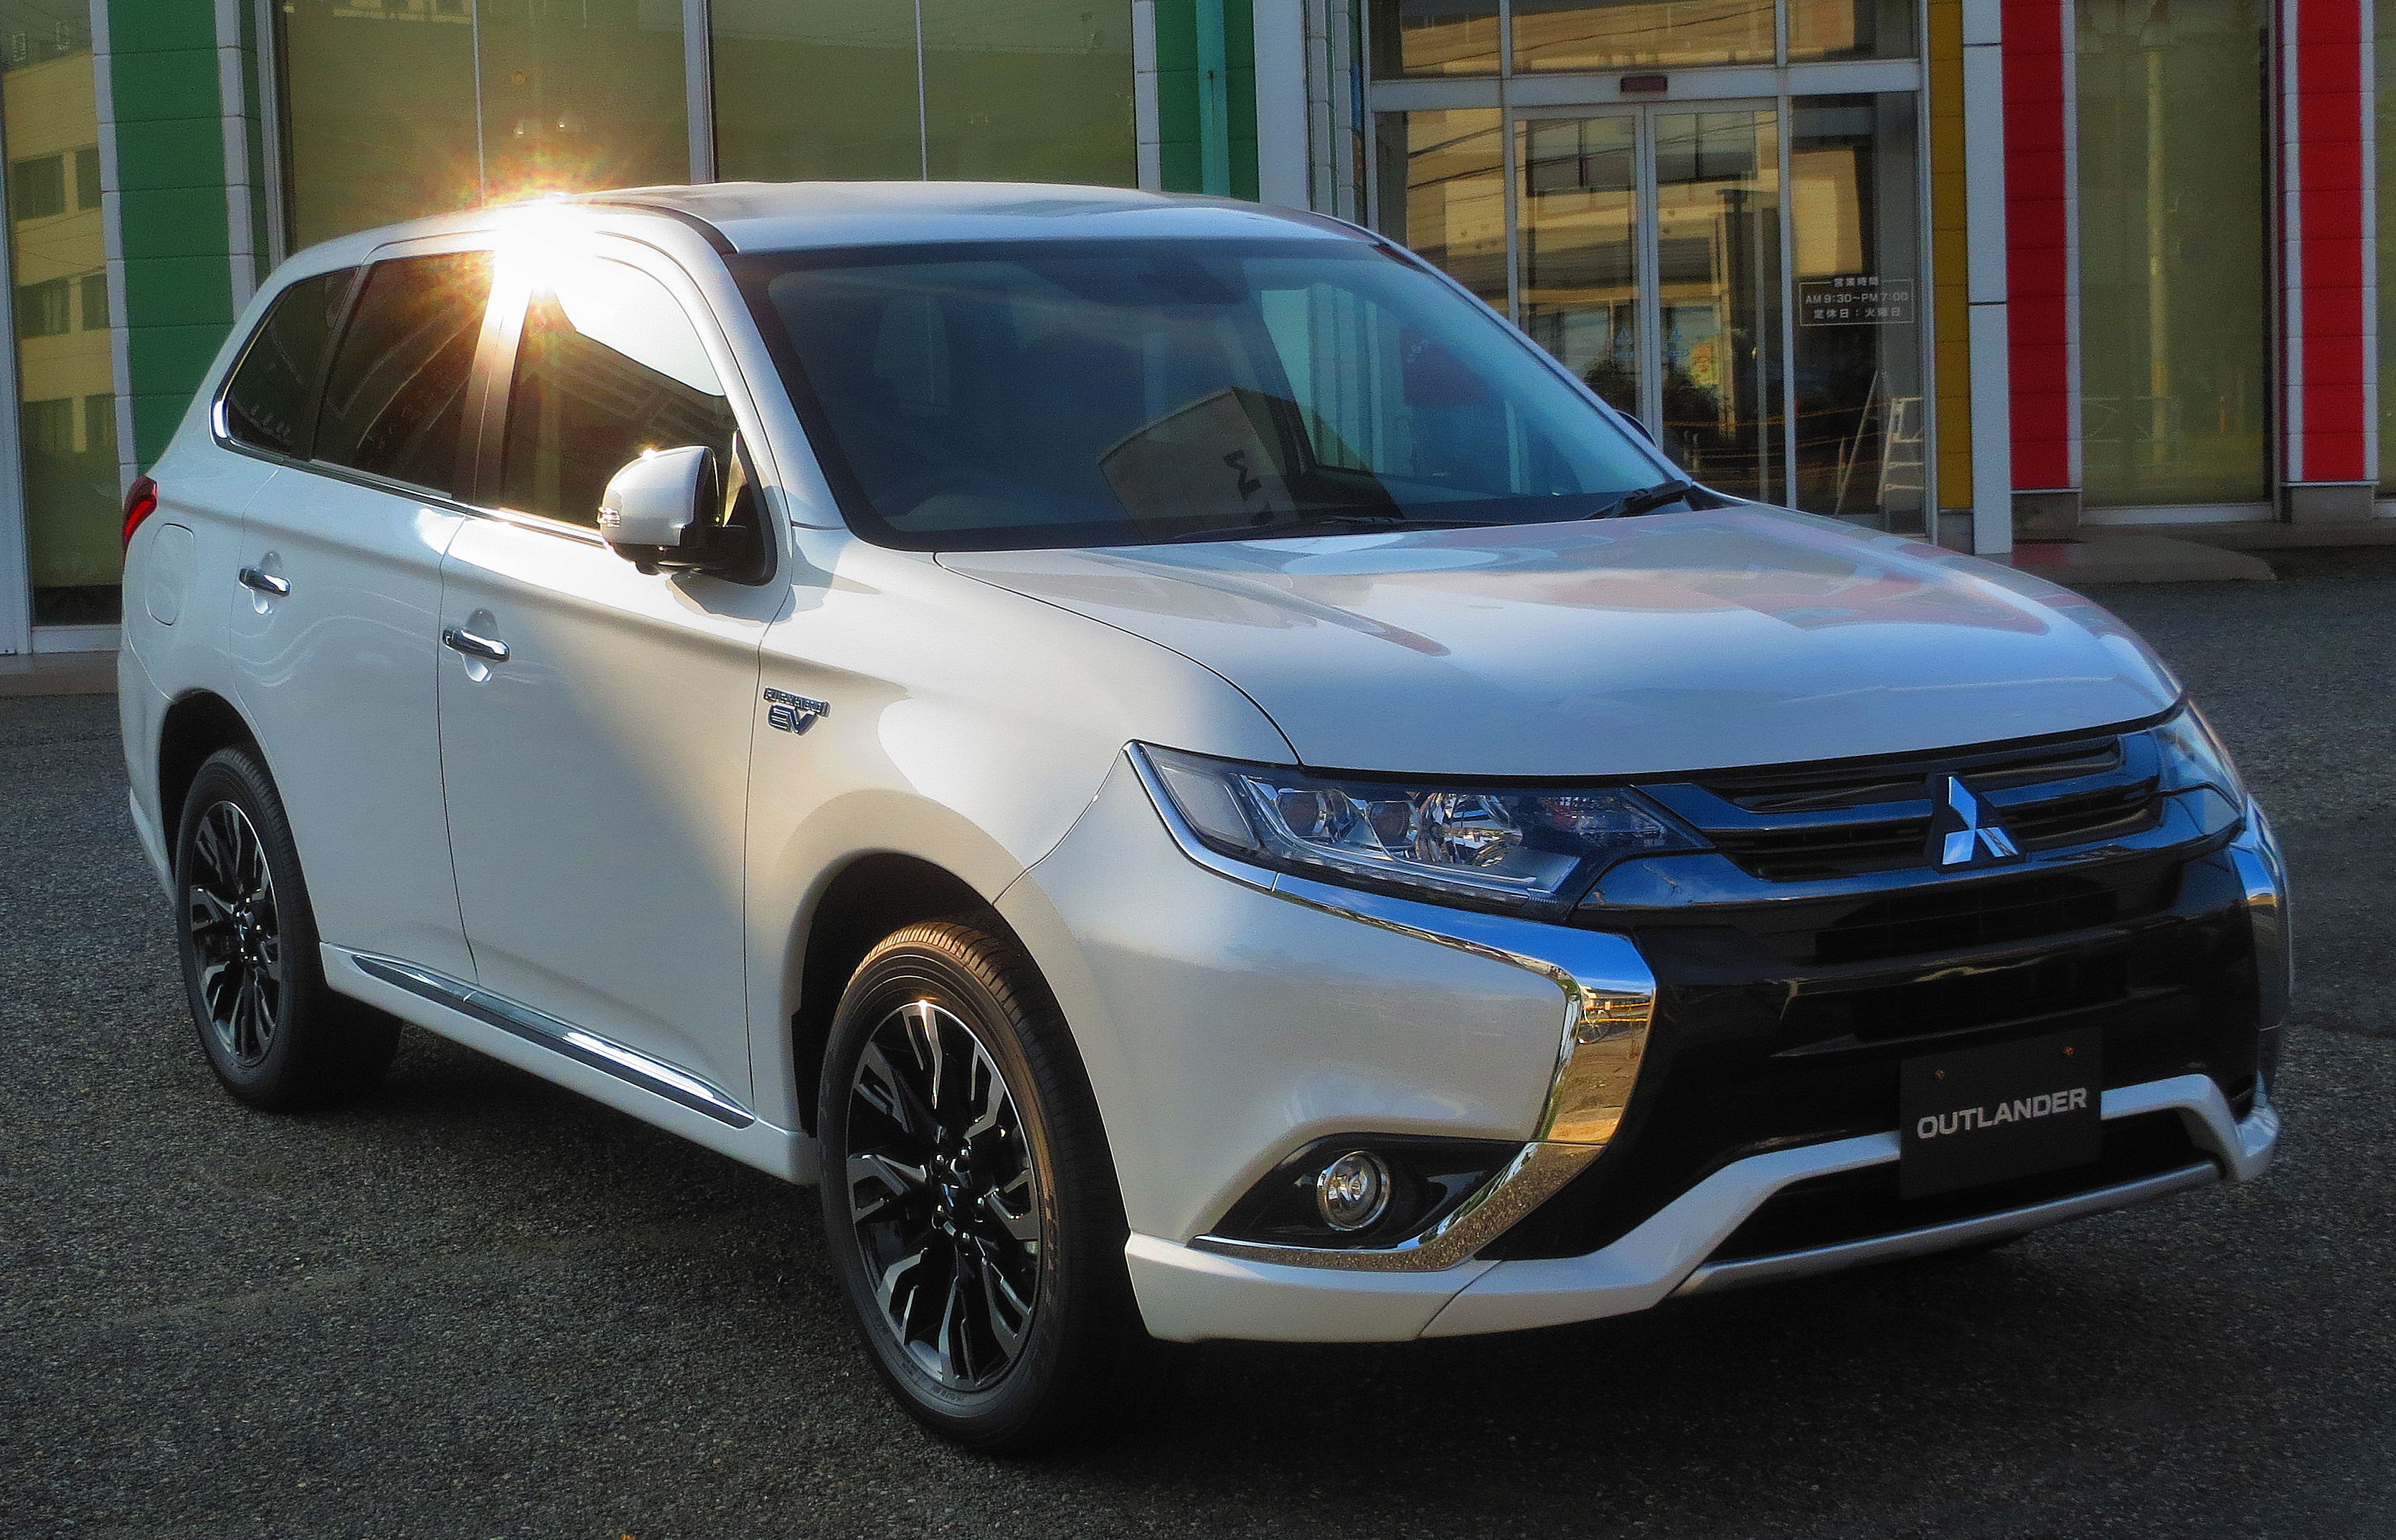 used outlander crossover mitsubishi auto offers three capability review ar rows of